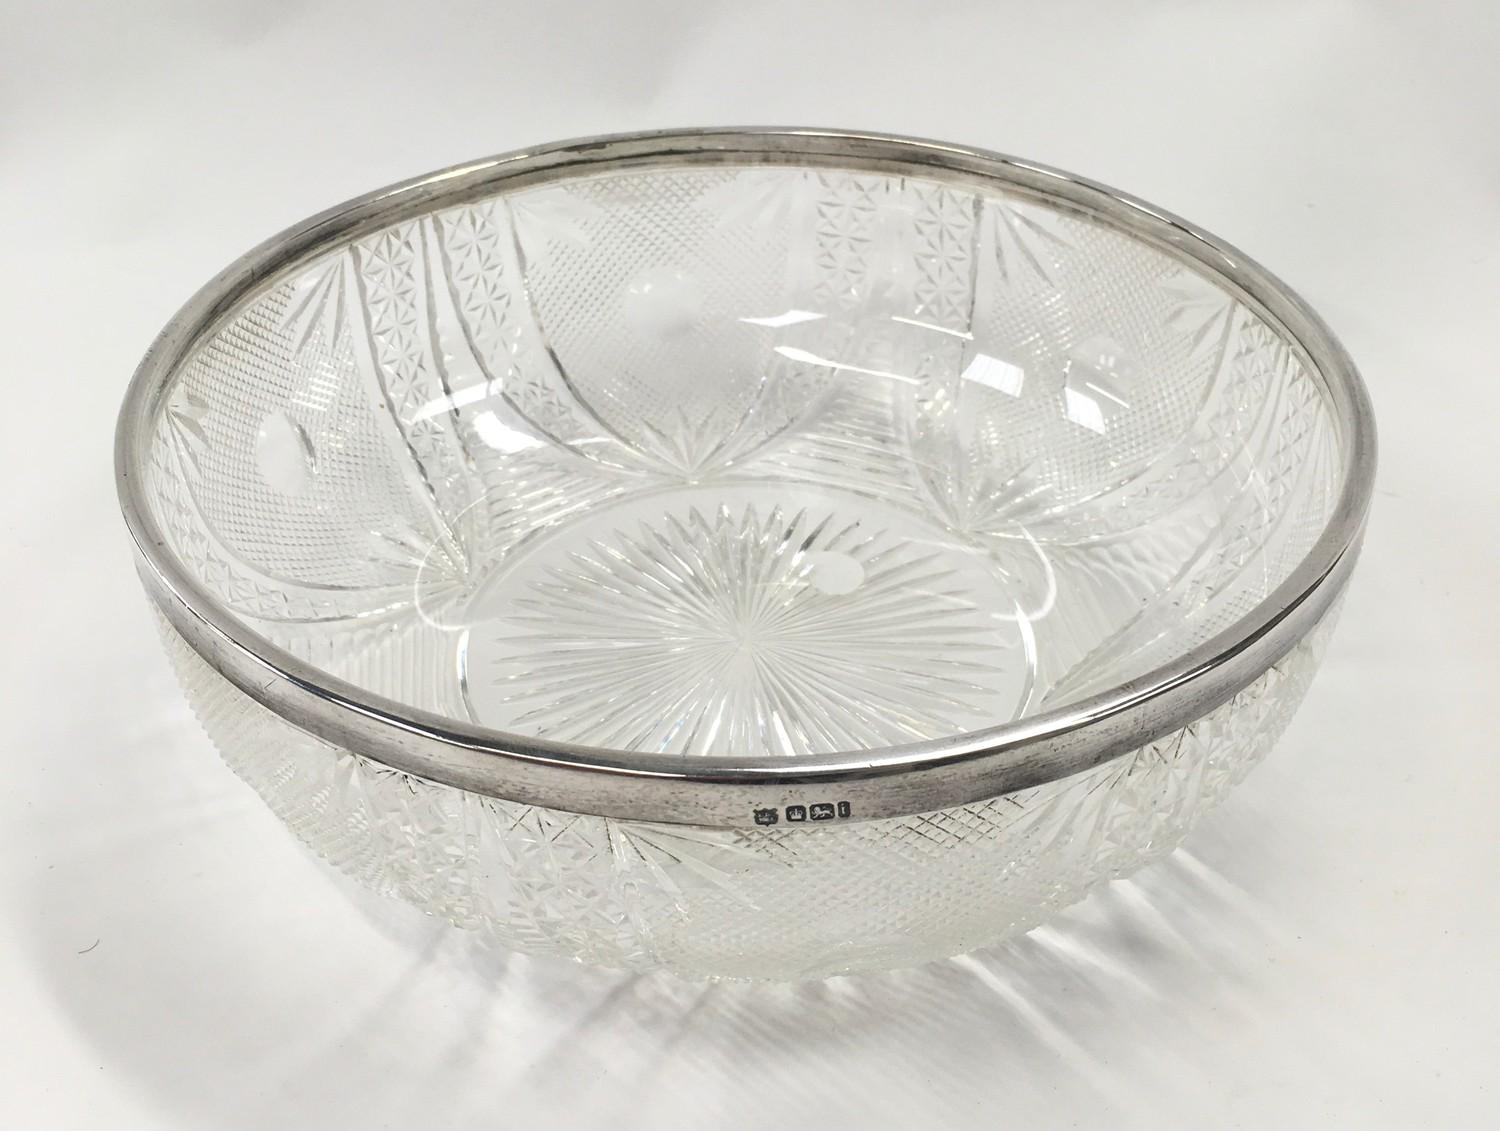 Cut glass bowl with silver rim.